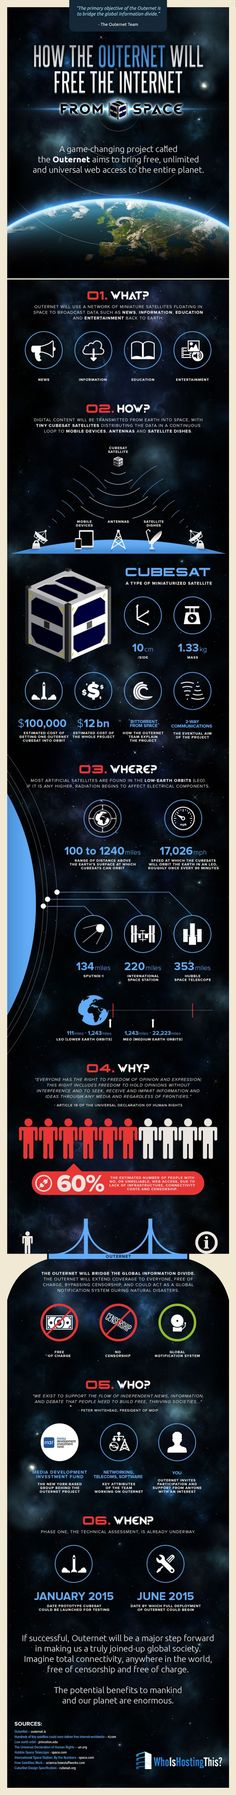 Visualistan: How the Outernet will free the Internet from space #infographic